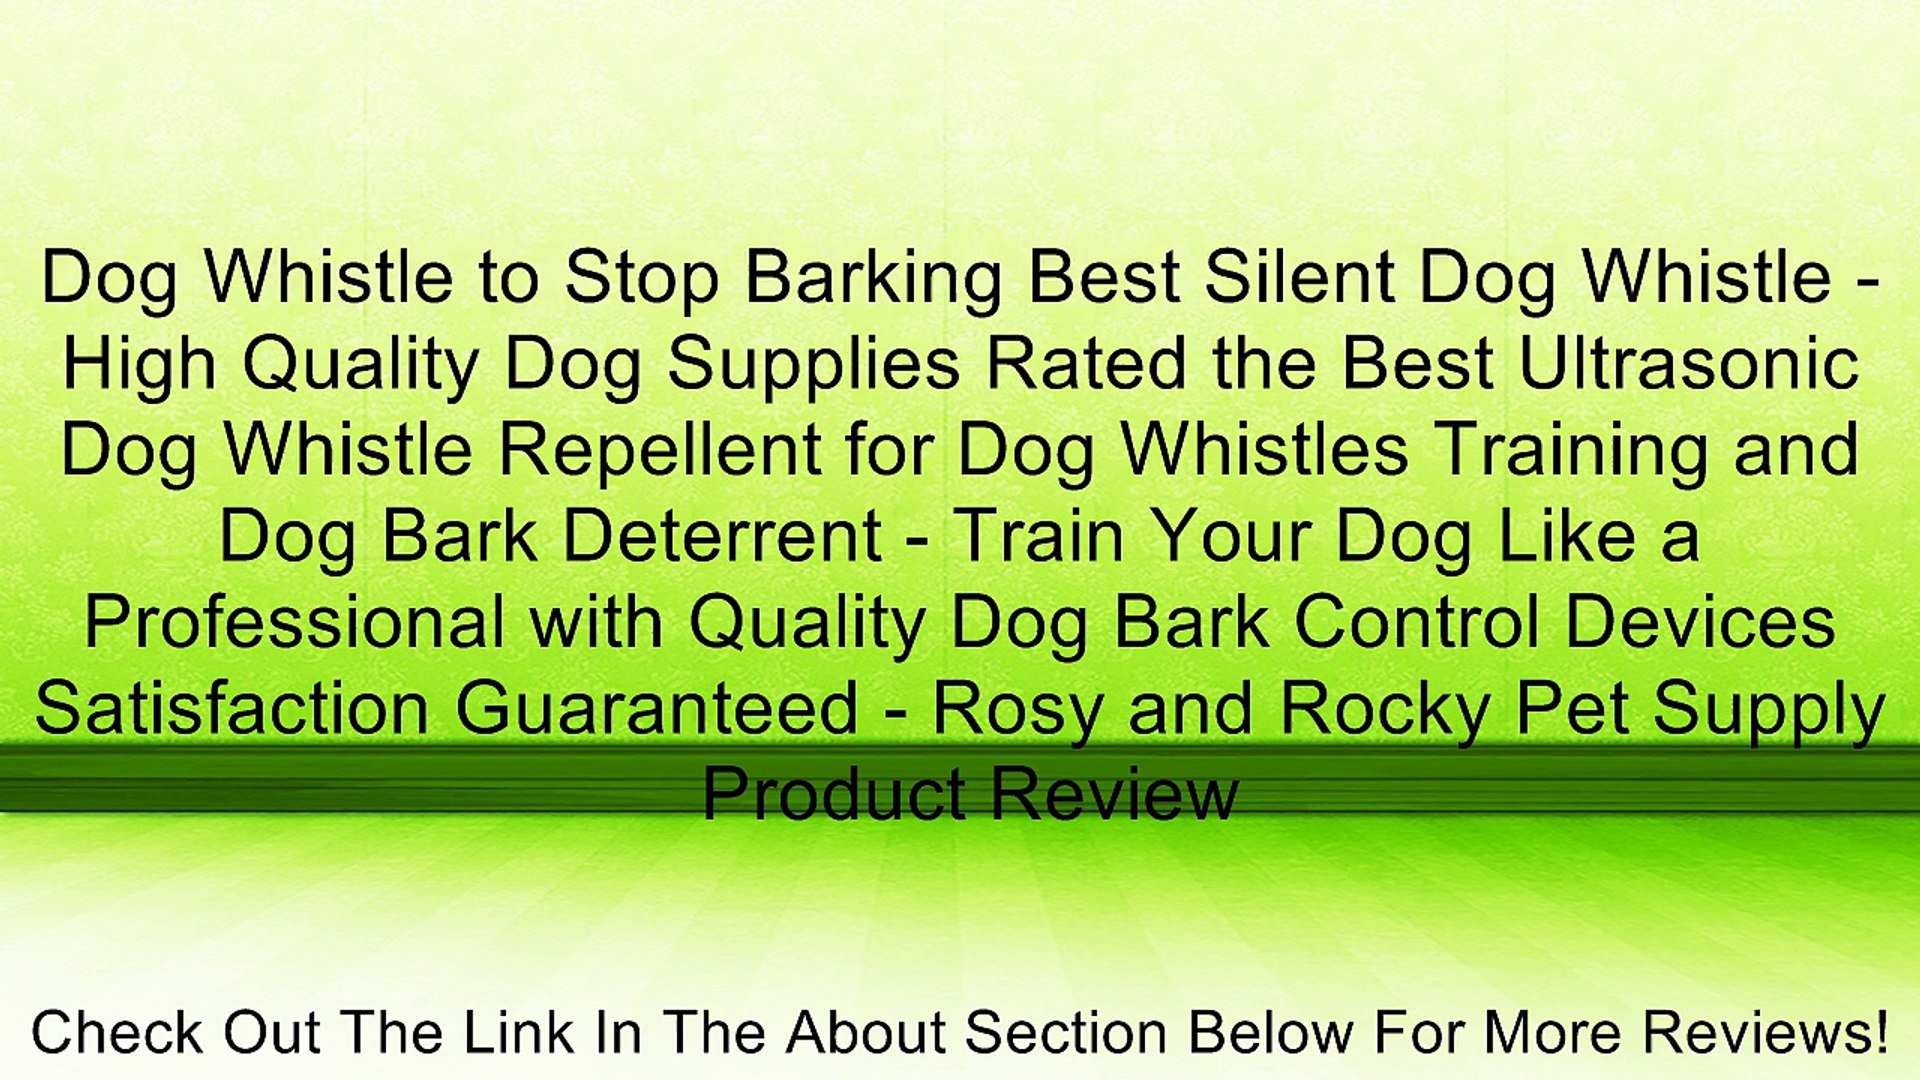 Dog Whistle to Stop Barking Best Silent Dog Whistle - High Quality Dog  Supplies Rated the Best Ultrasonic Dog Whistle Repellent for Dog Whistles  Training and Dog Bark Deterrent - Train Your Dog Like a